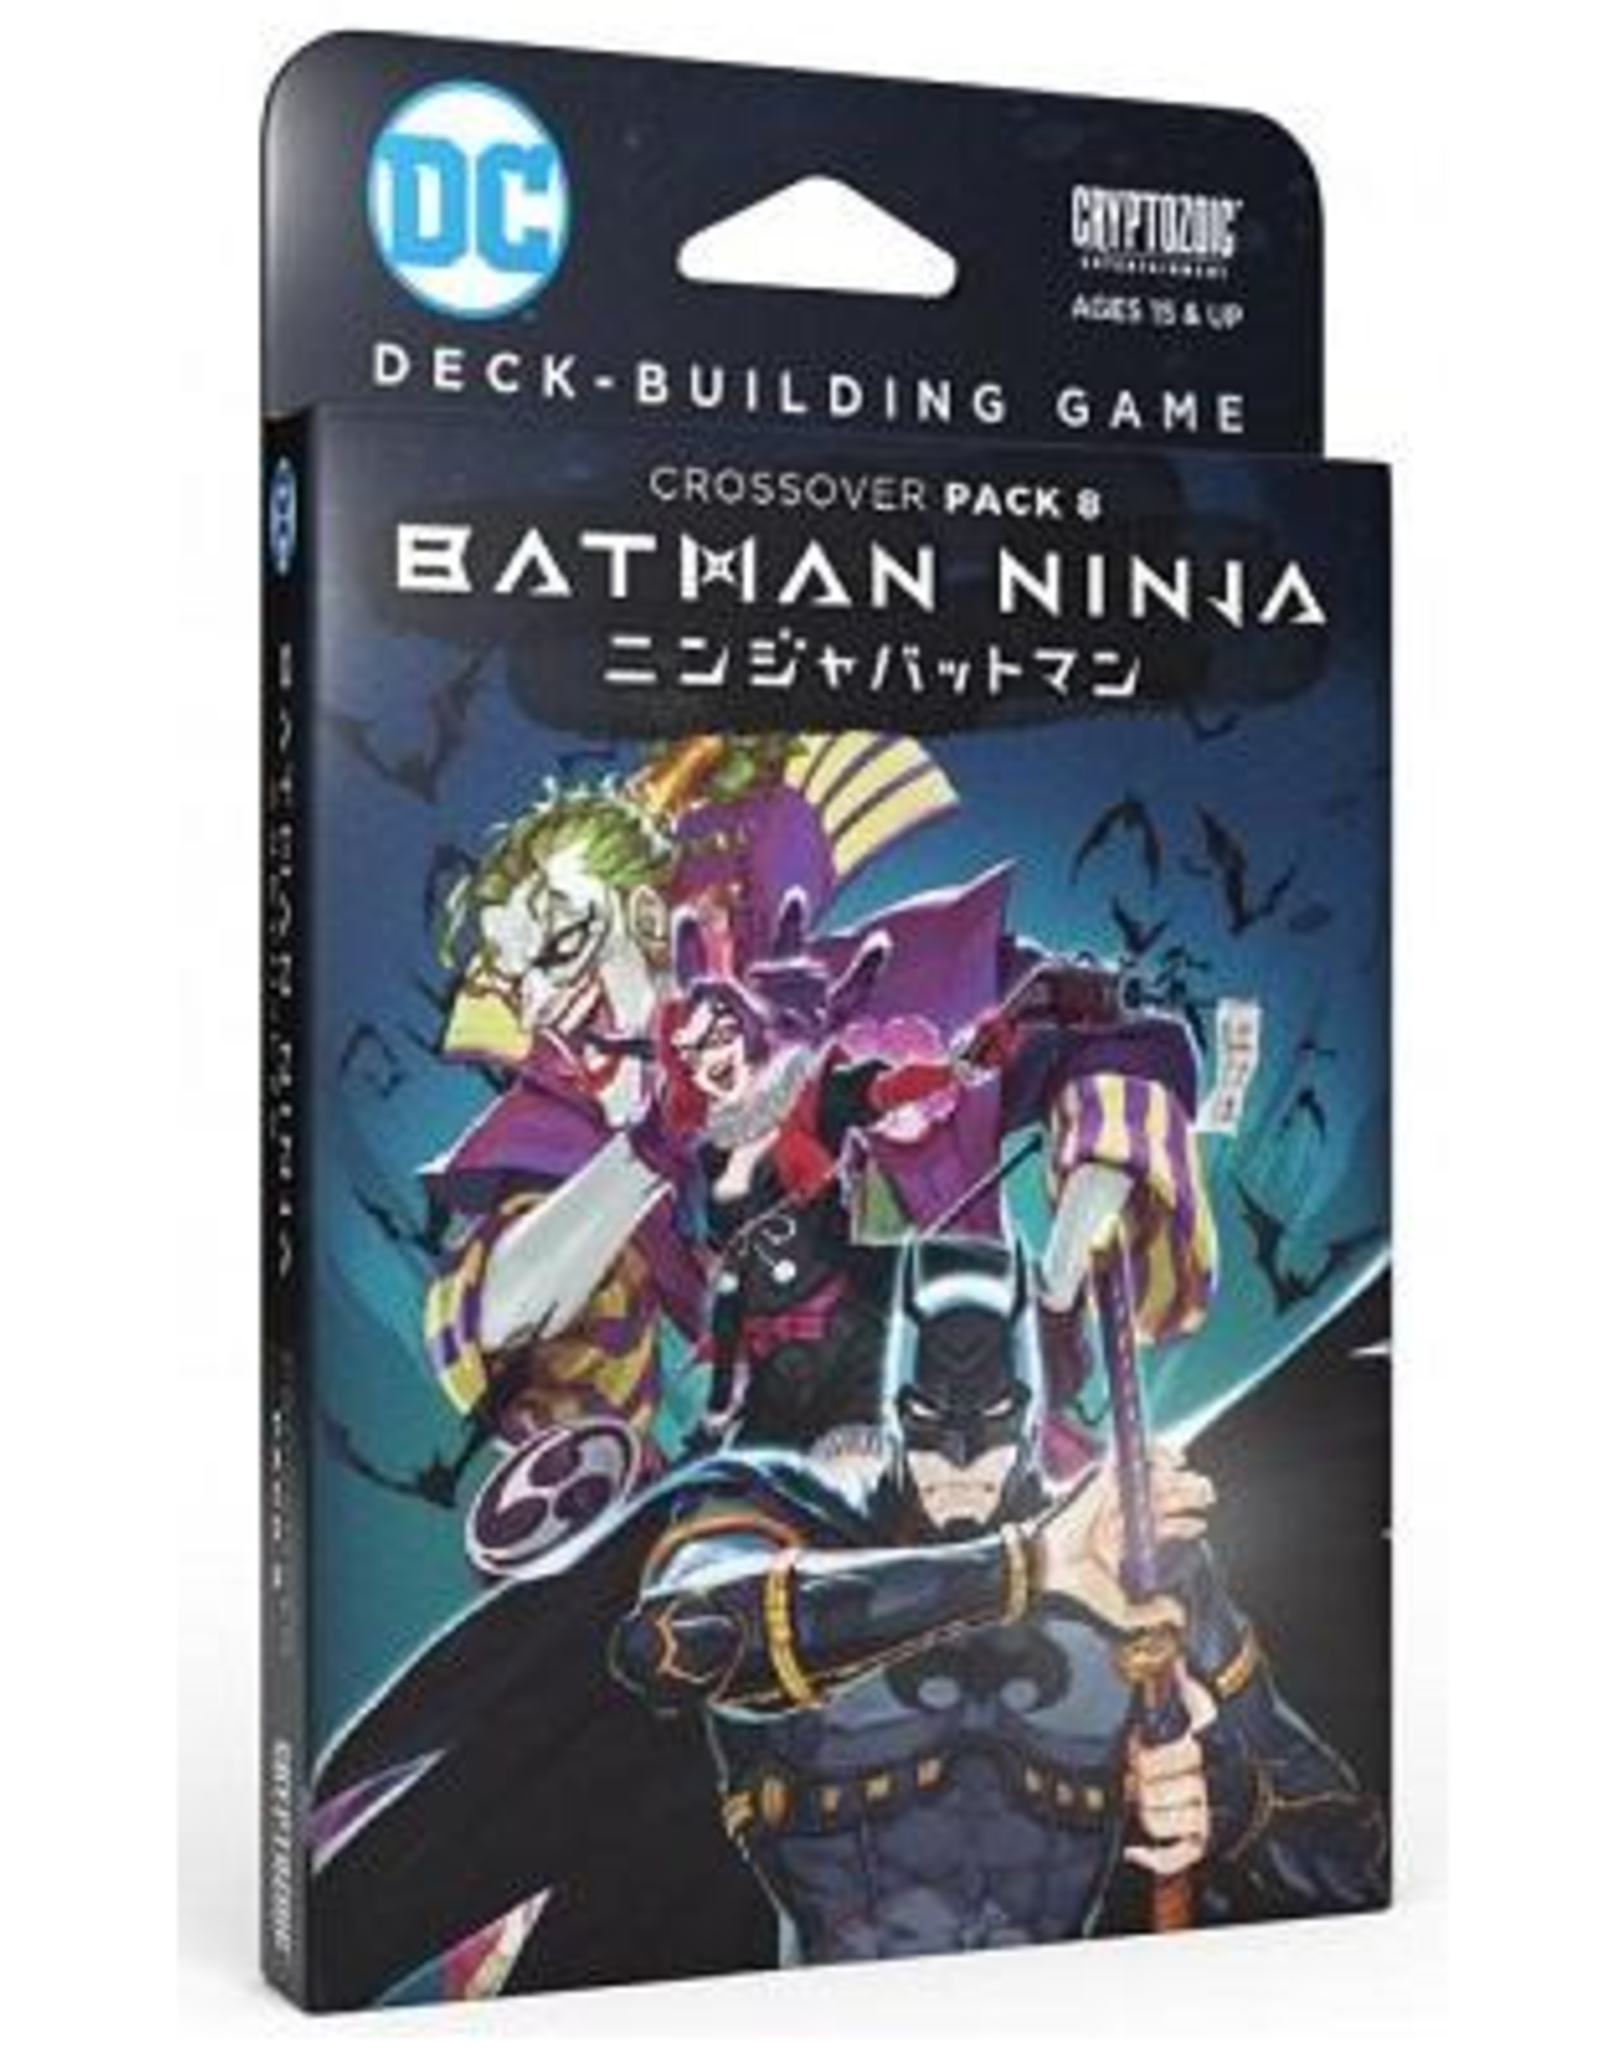 Cryptozoic DC Comics Deck-Building Game: Crossover Pack 8 - Batman Ninja